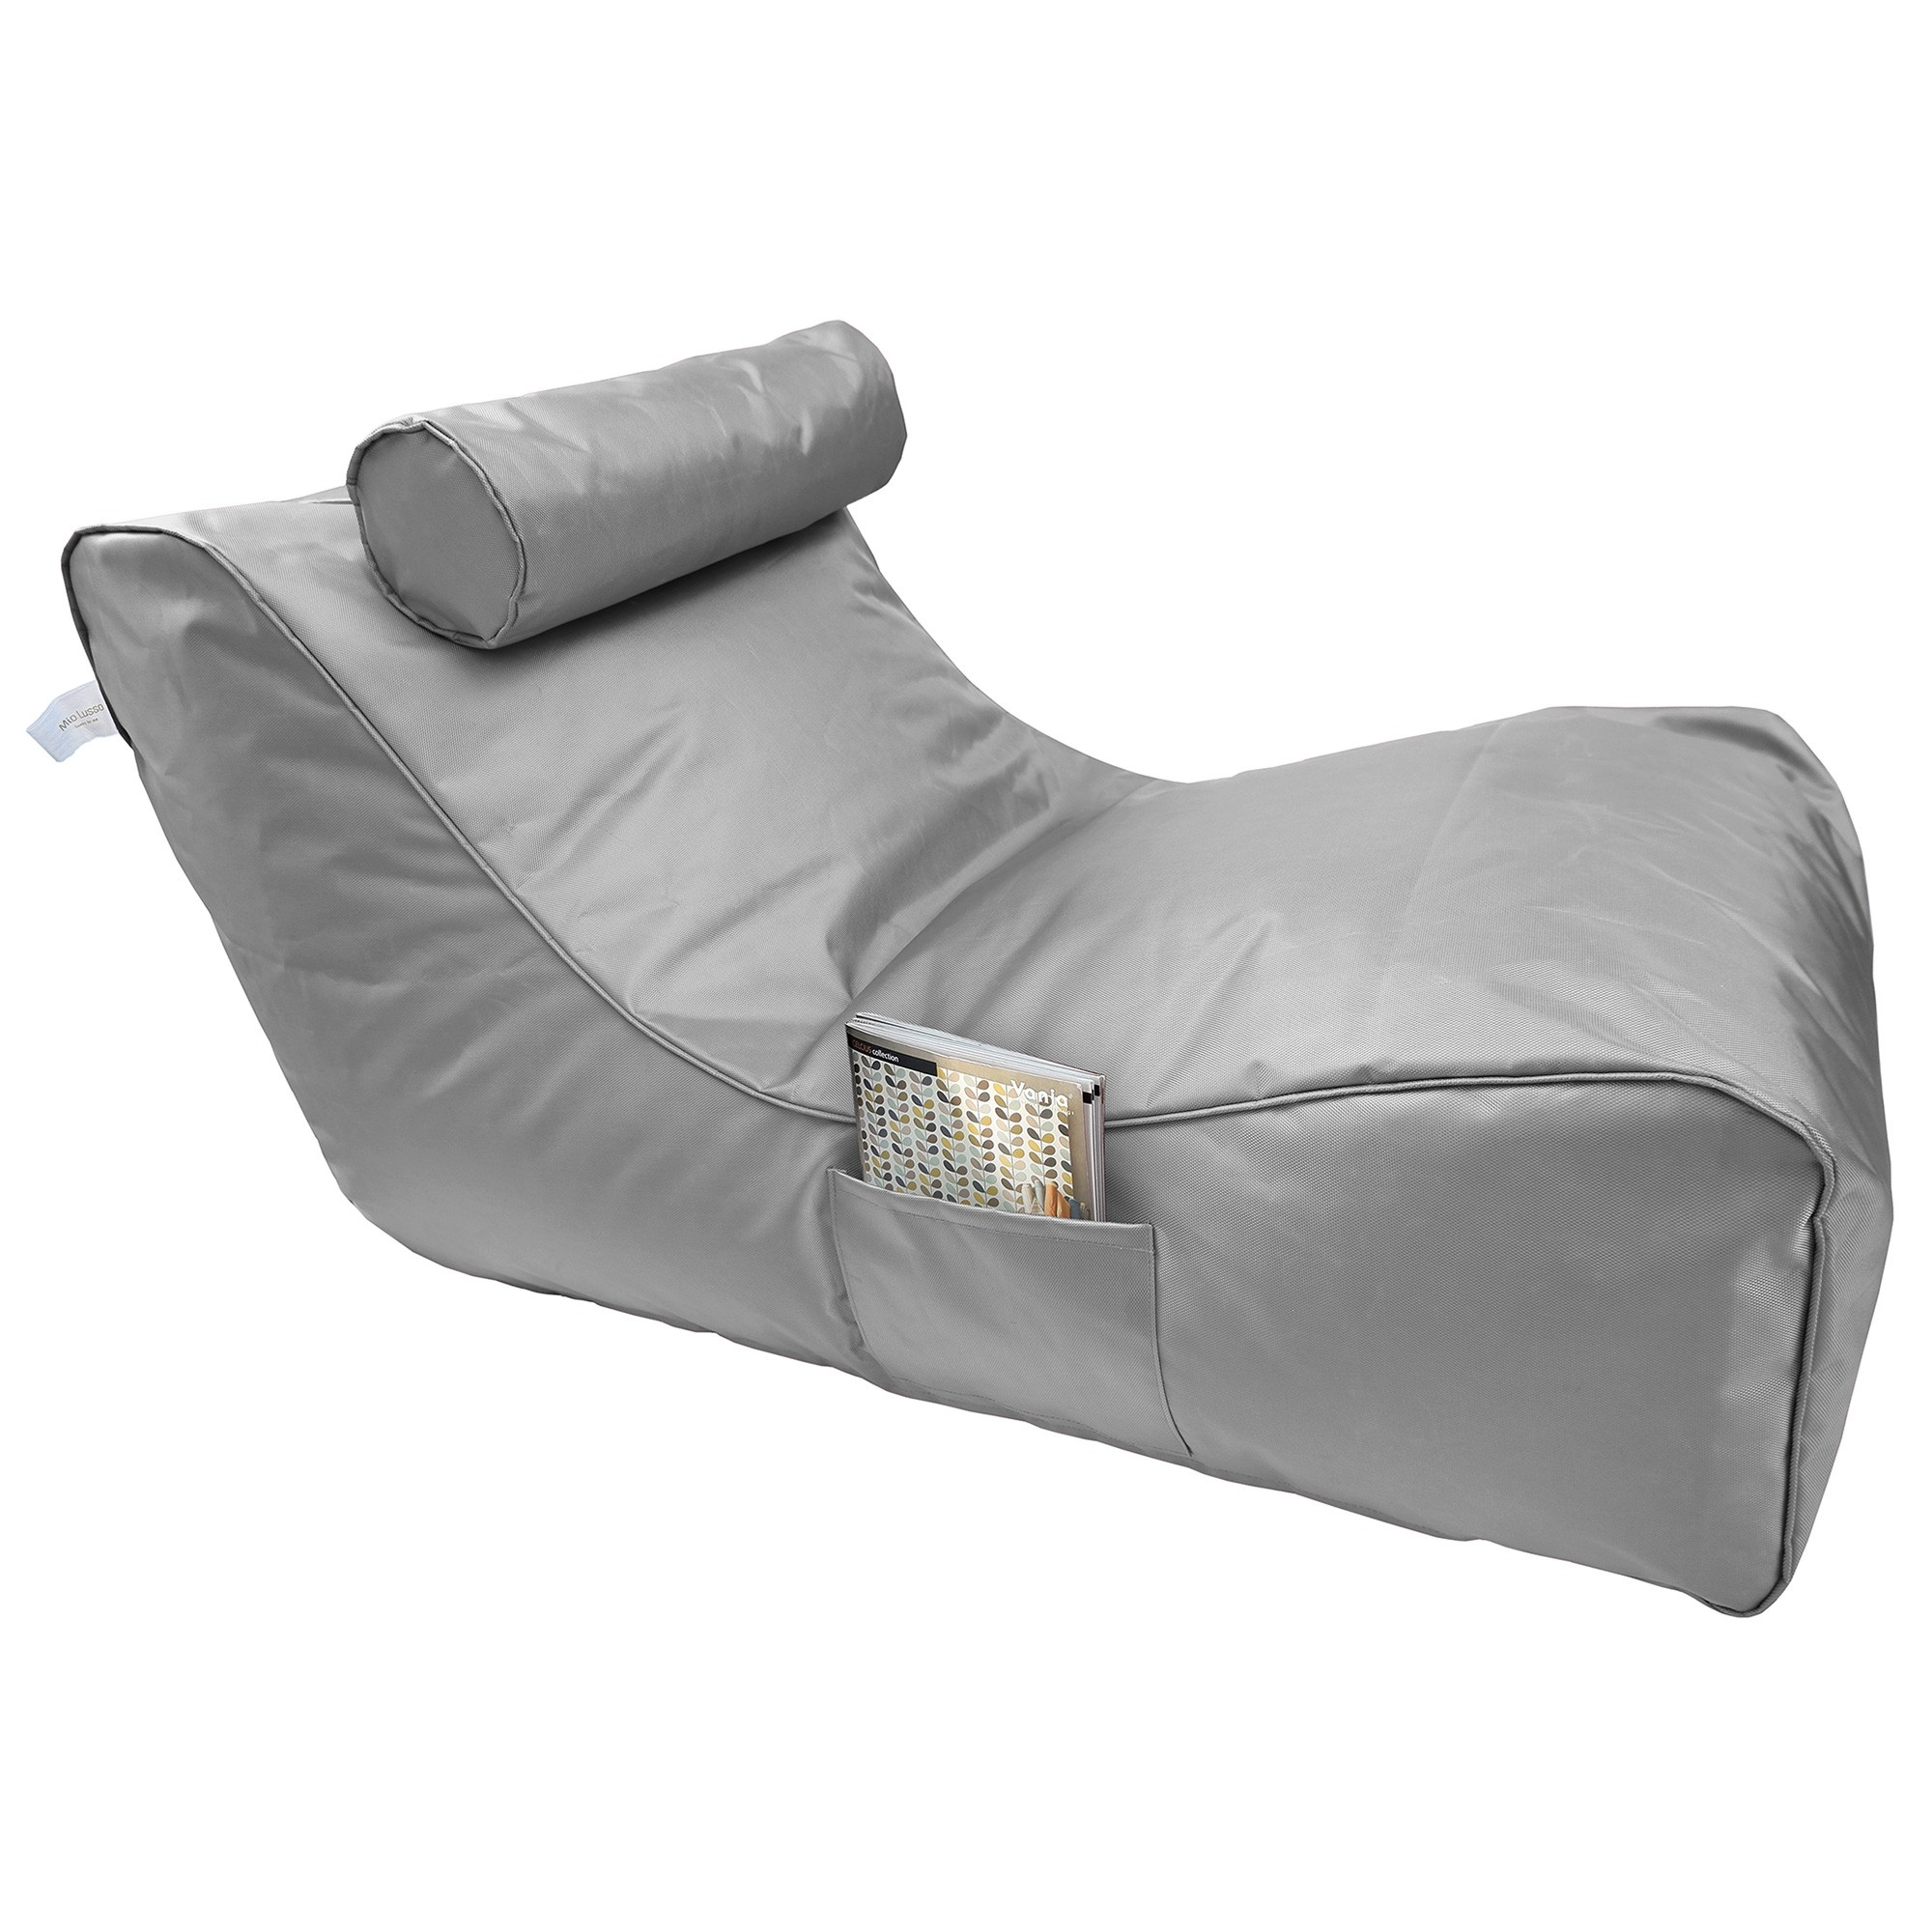 Panama Fabric Indoor / Outdoor Bean Bag Cover, Silver